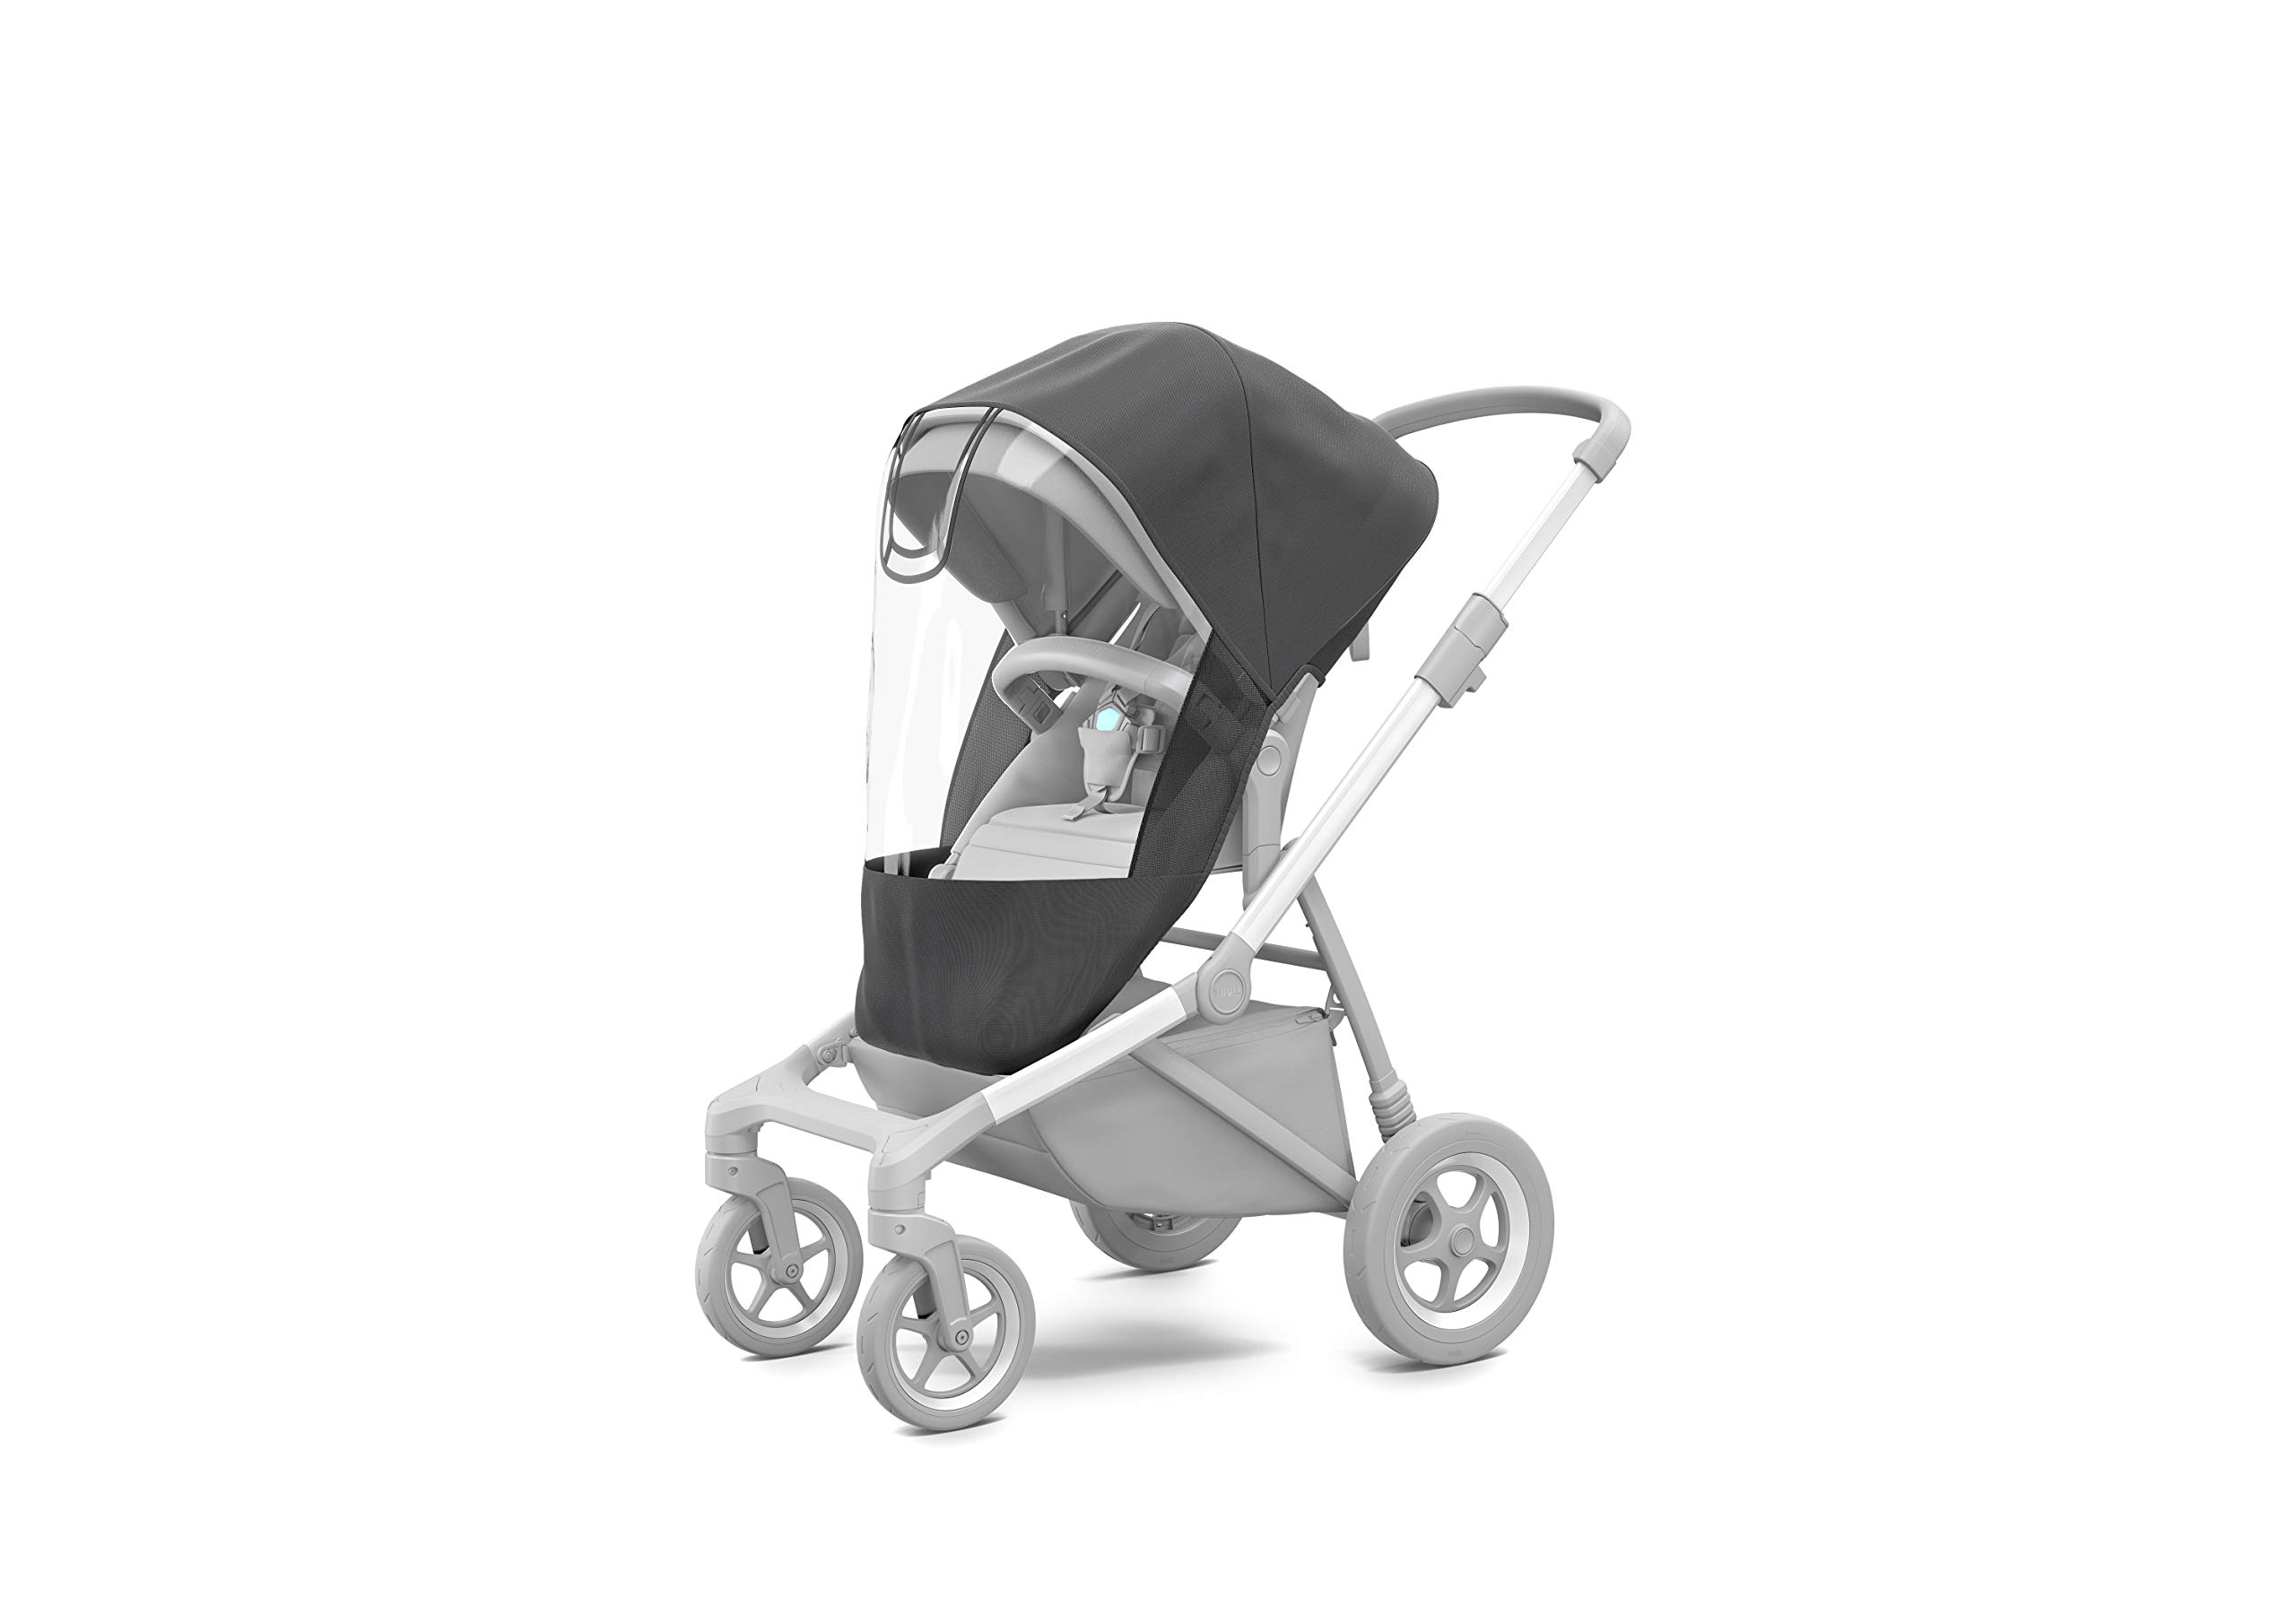 Thule Sleek Sibling Seat, Black Thule Ventilated canopy with peekaboo window and extendable sun visor gives your child a pleasant ride in any weather and provides UV protection (UPF 50+) Comfortable large seating area, with generous sitting height and foot well Reversible seat for parent- or forward-facing position 8